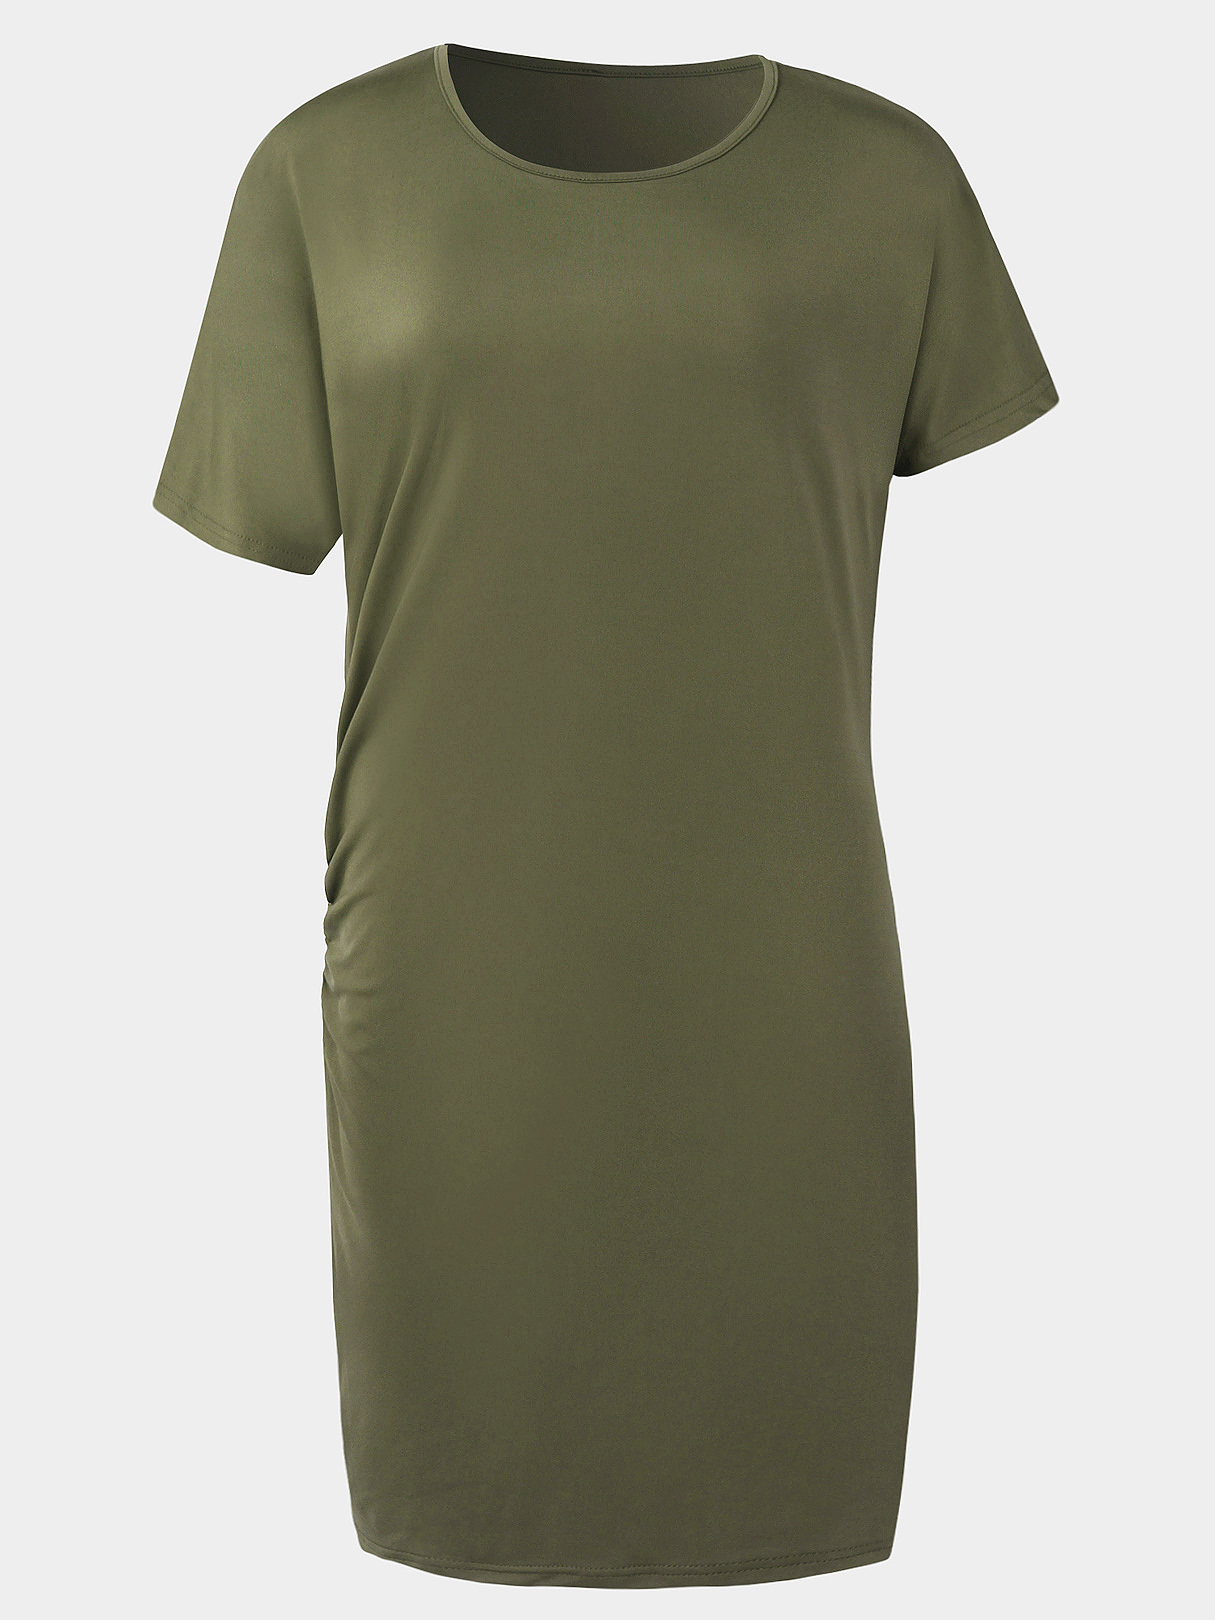 Green Pleated Design Plain Dress With Knee Length